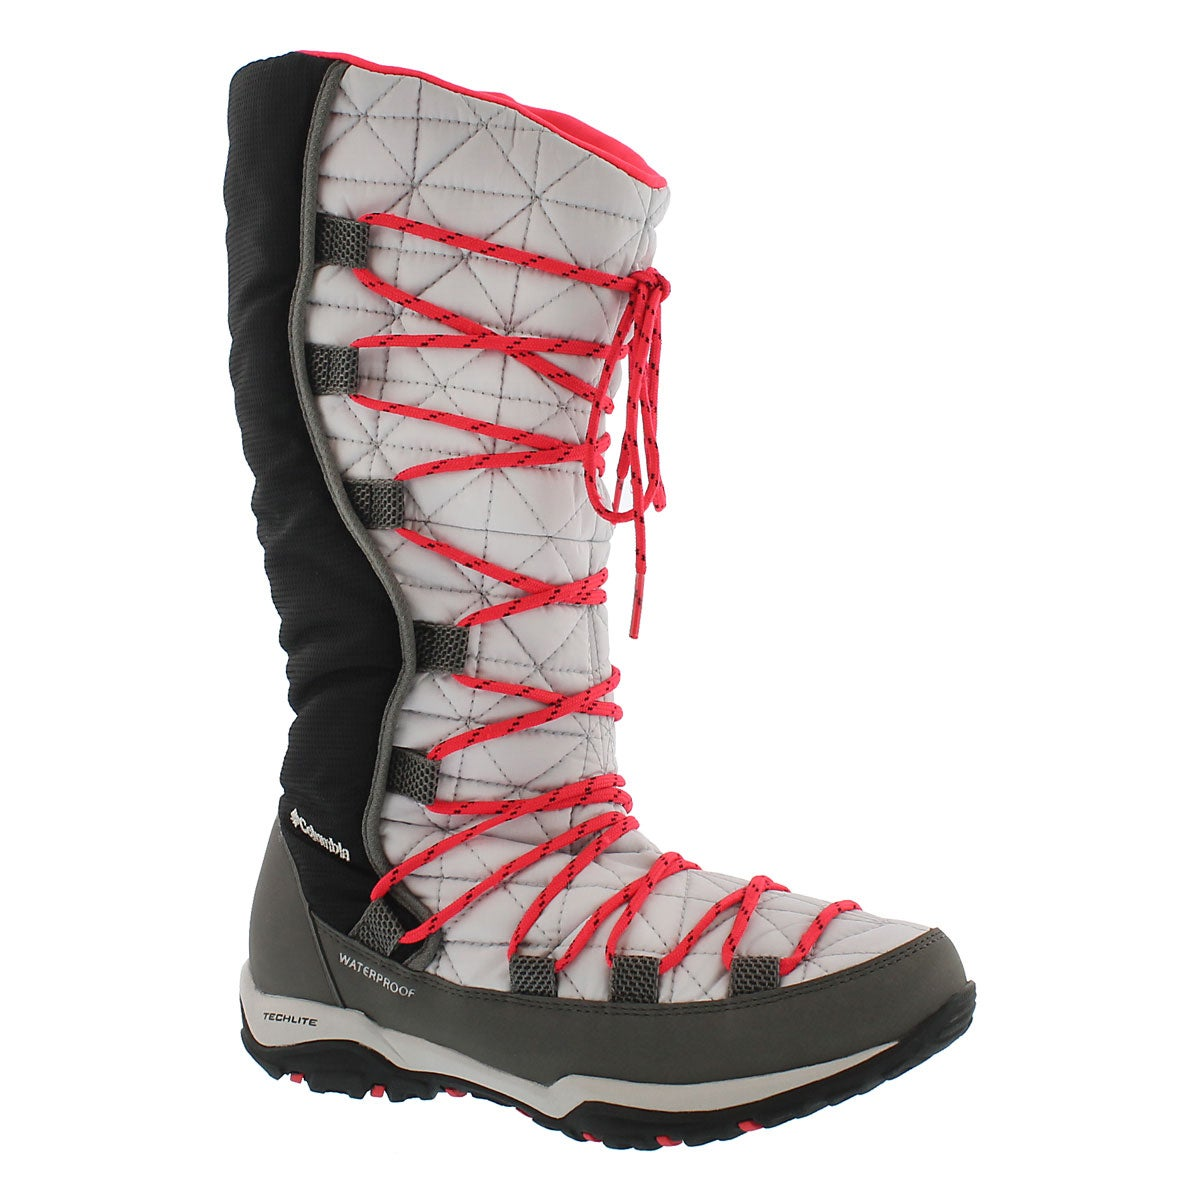 Lds Loveland Omni-Heat gry/red boot